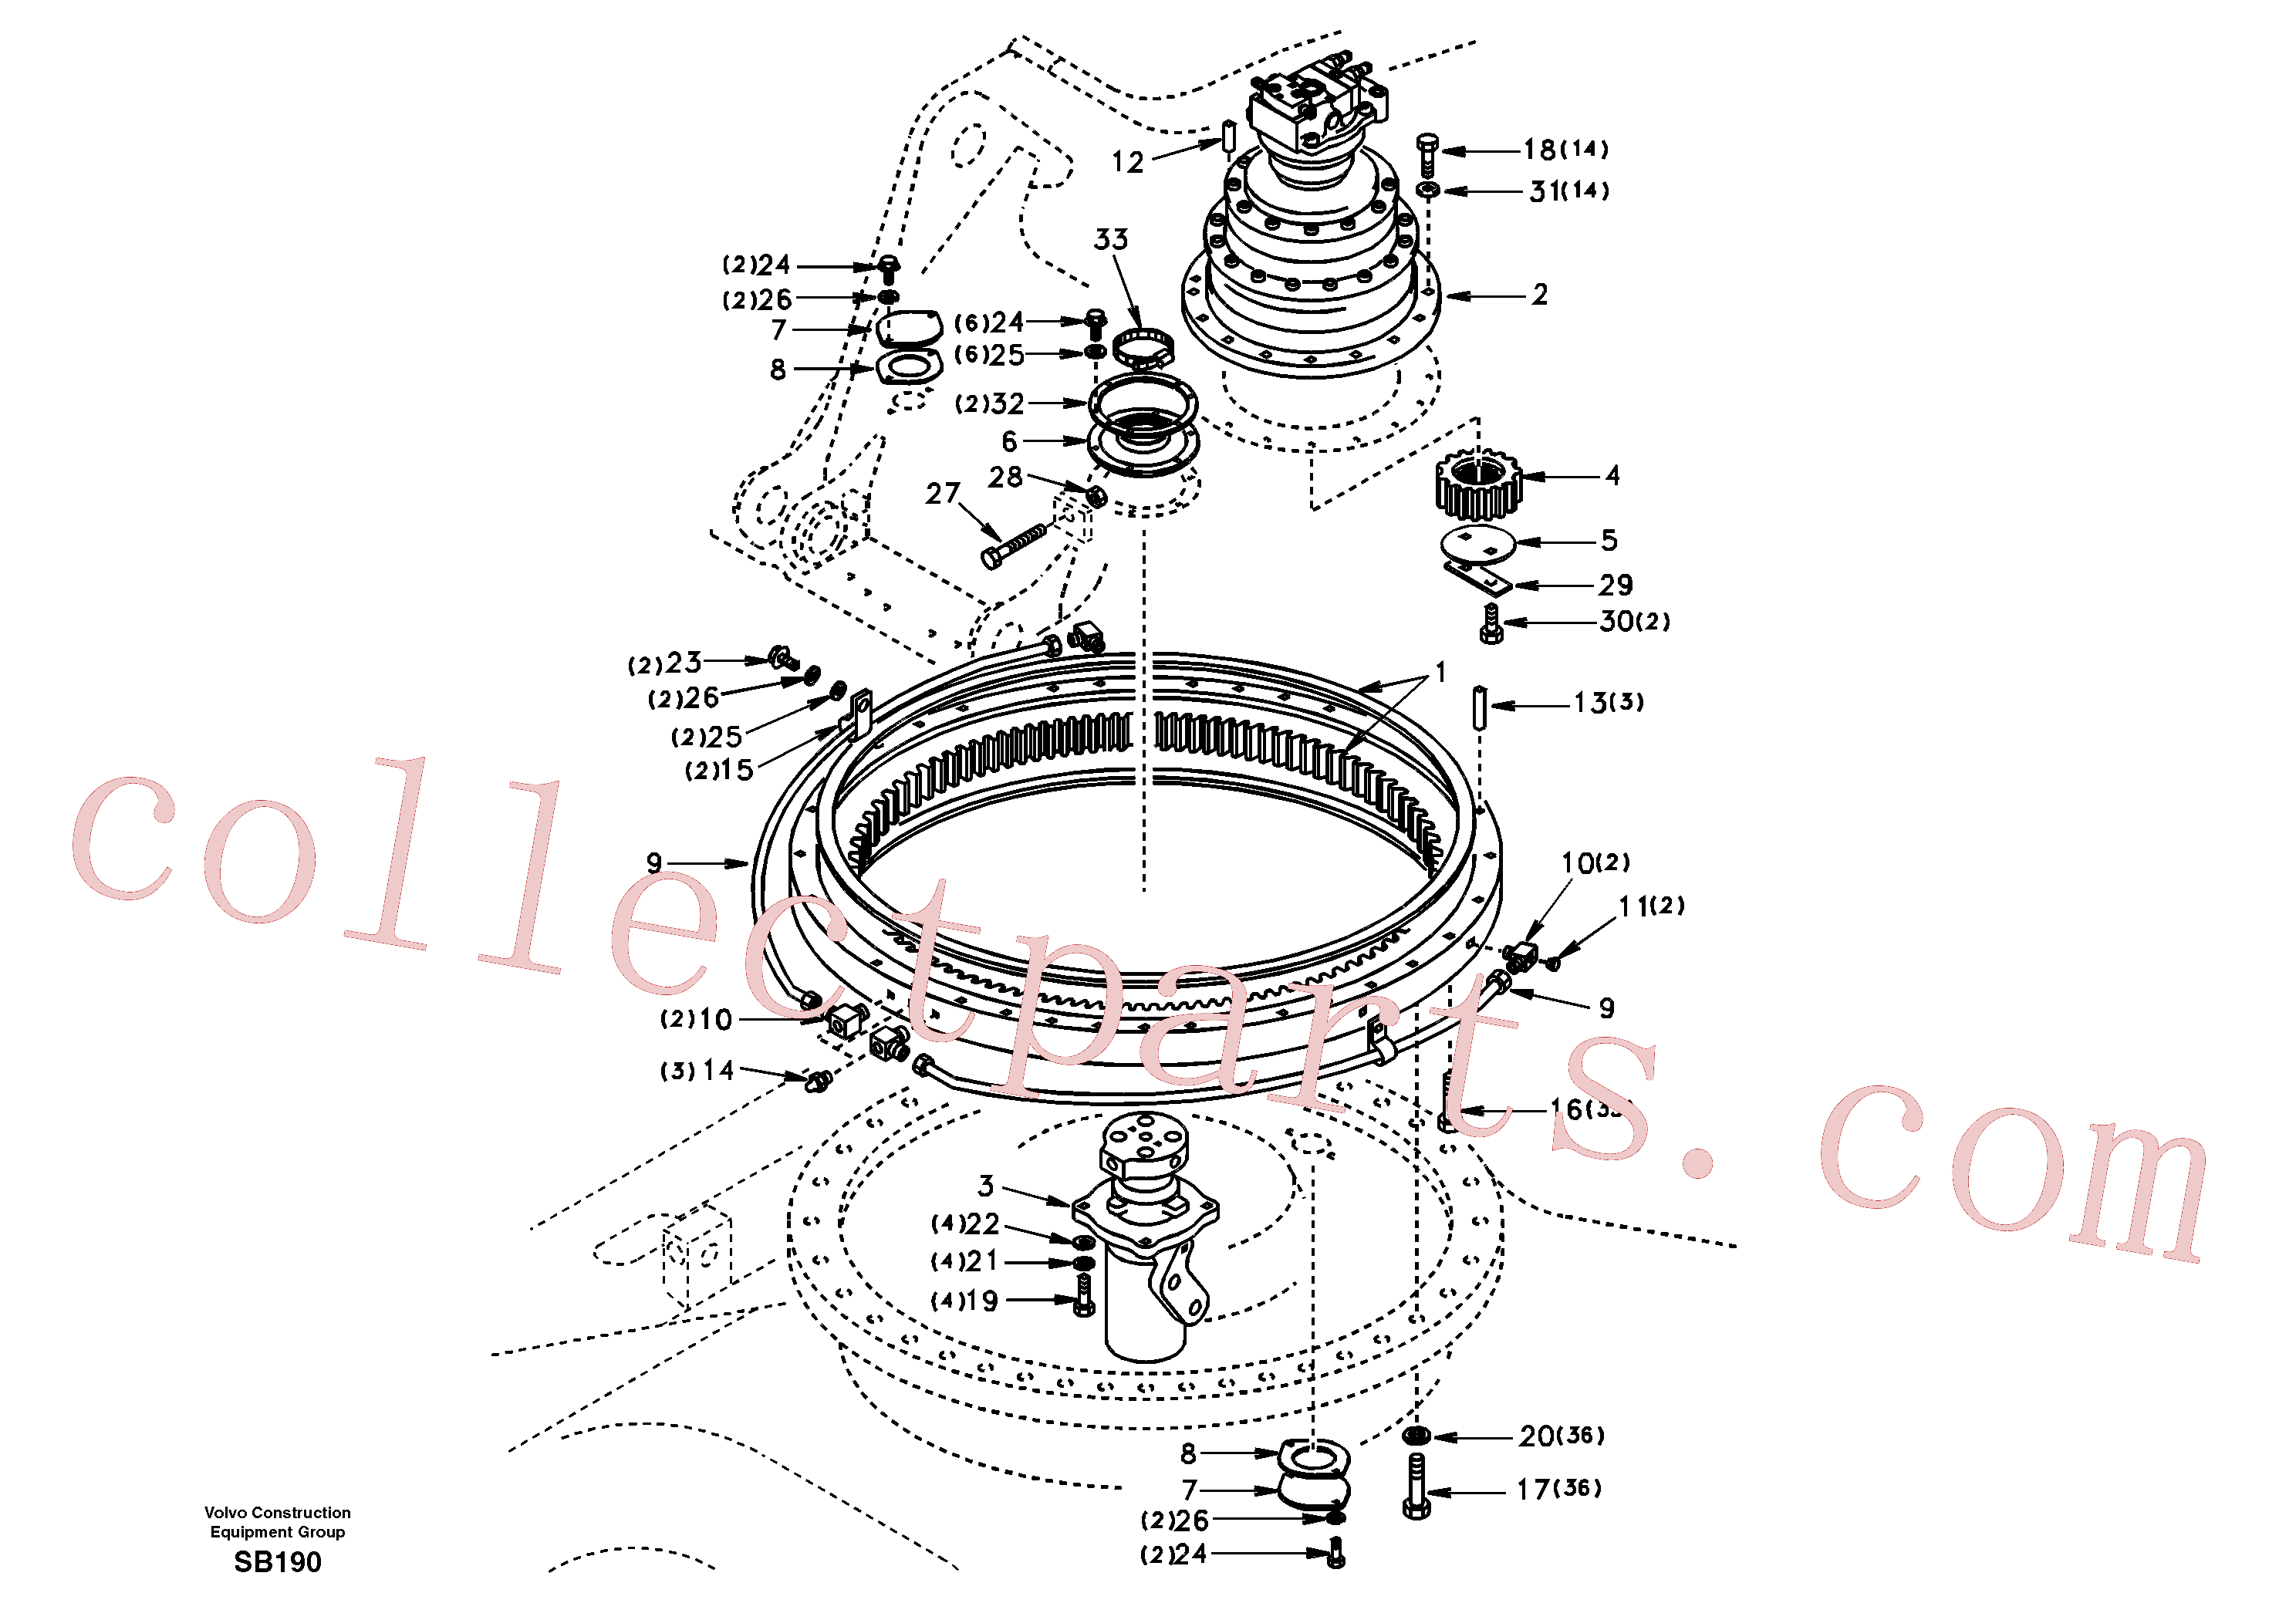 SA1050-14201 for Volvo Swing system(SB190 assembly)